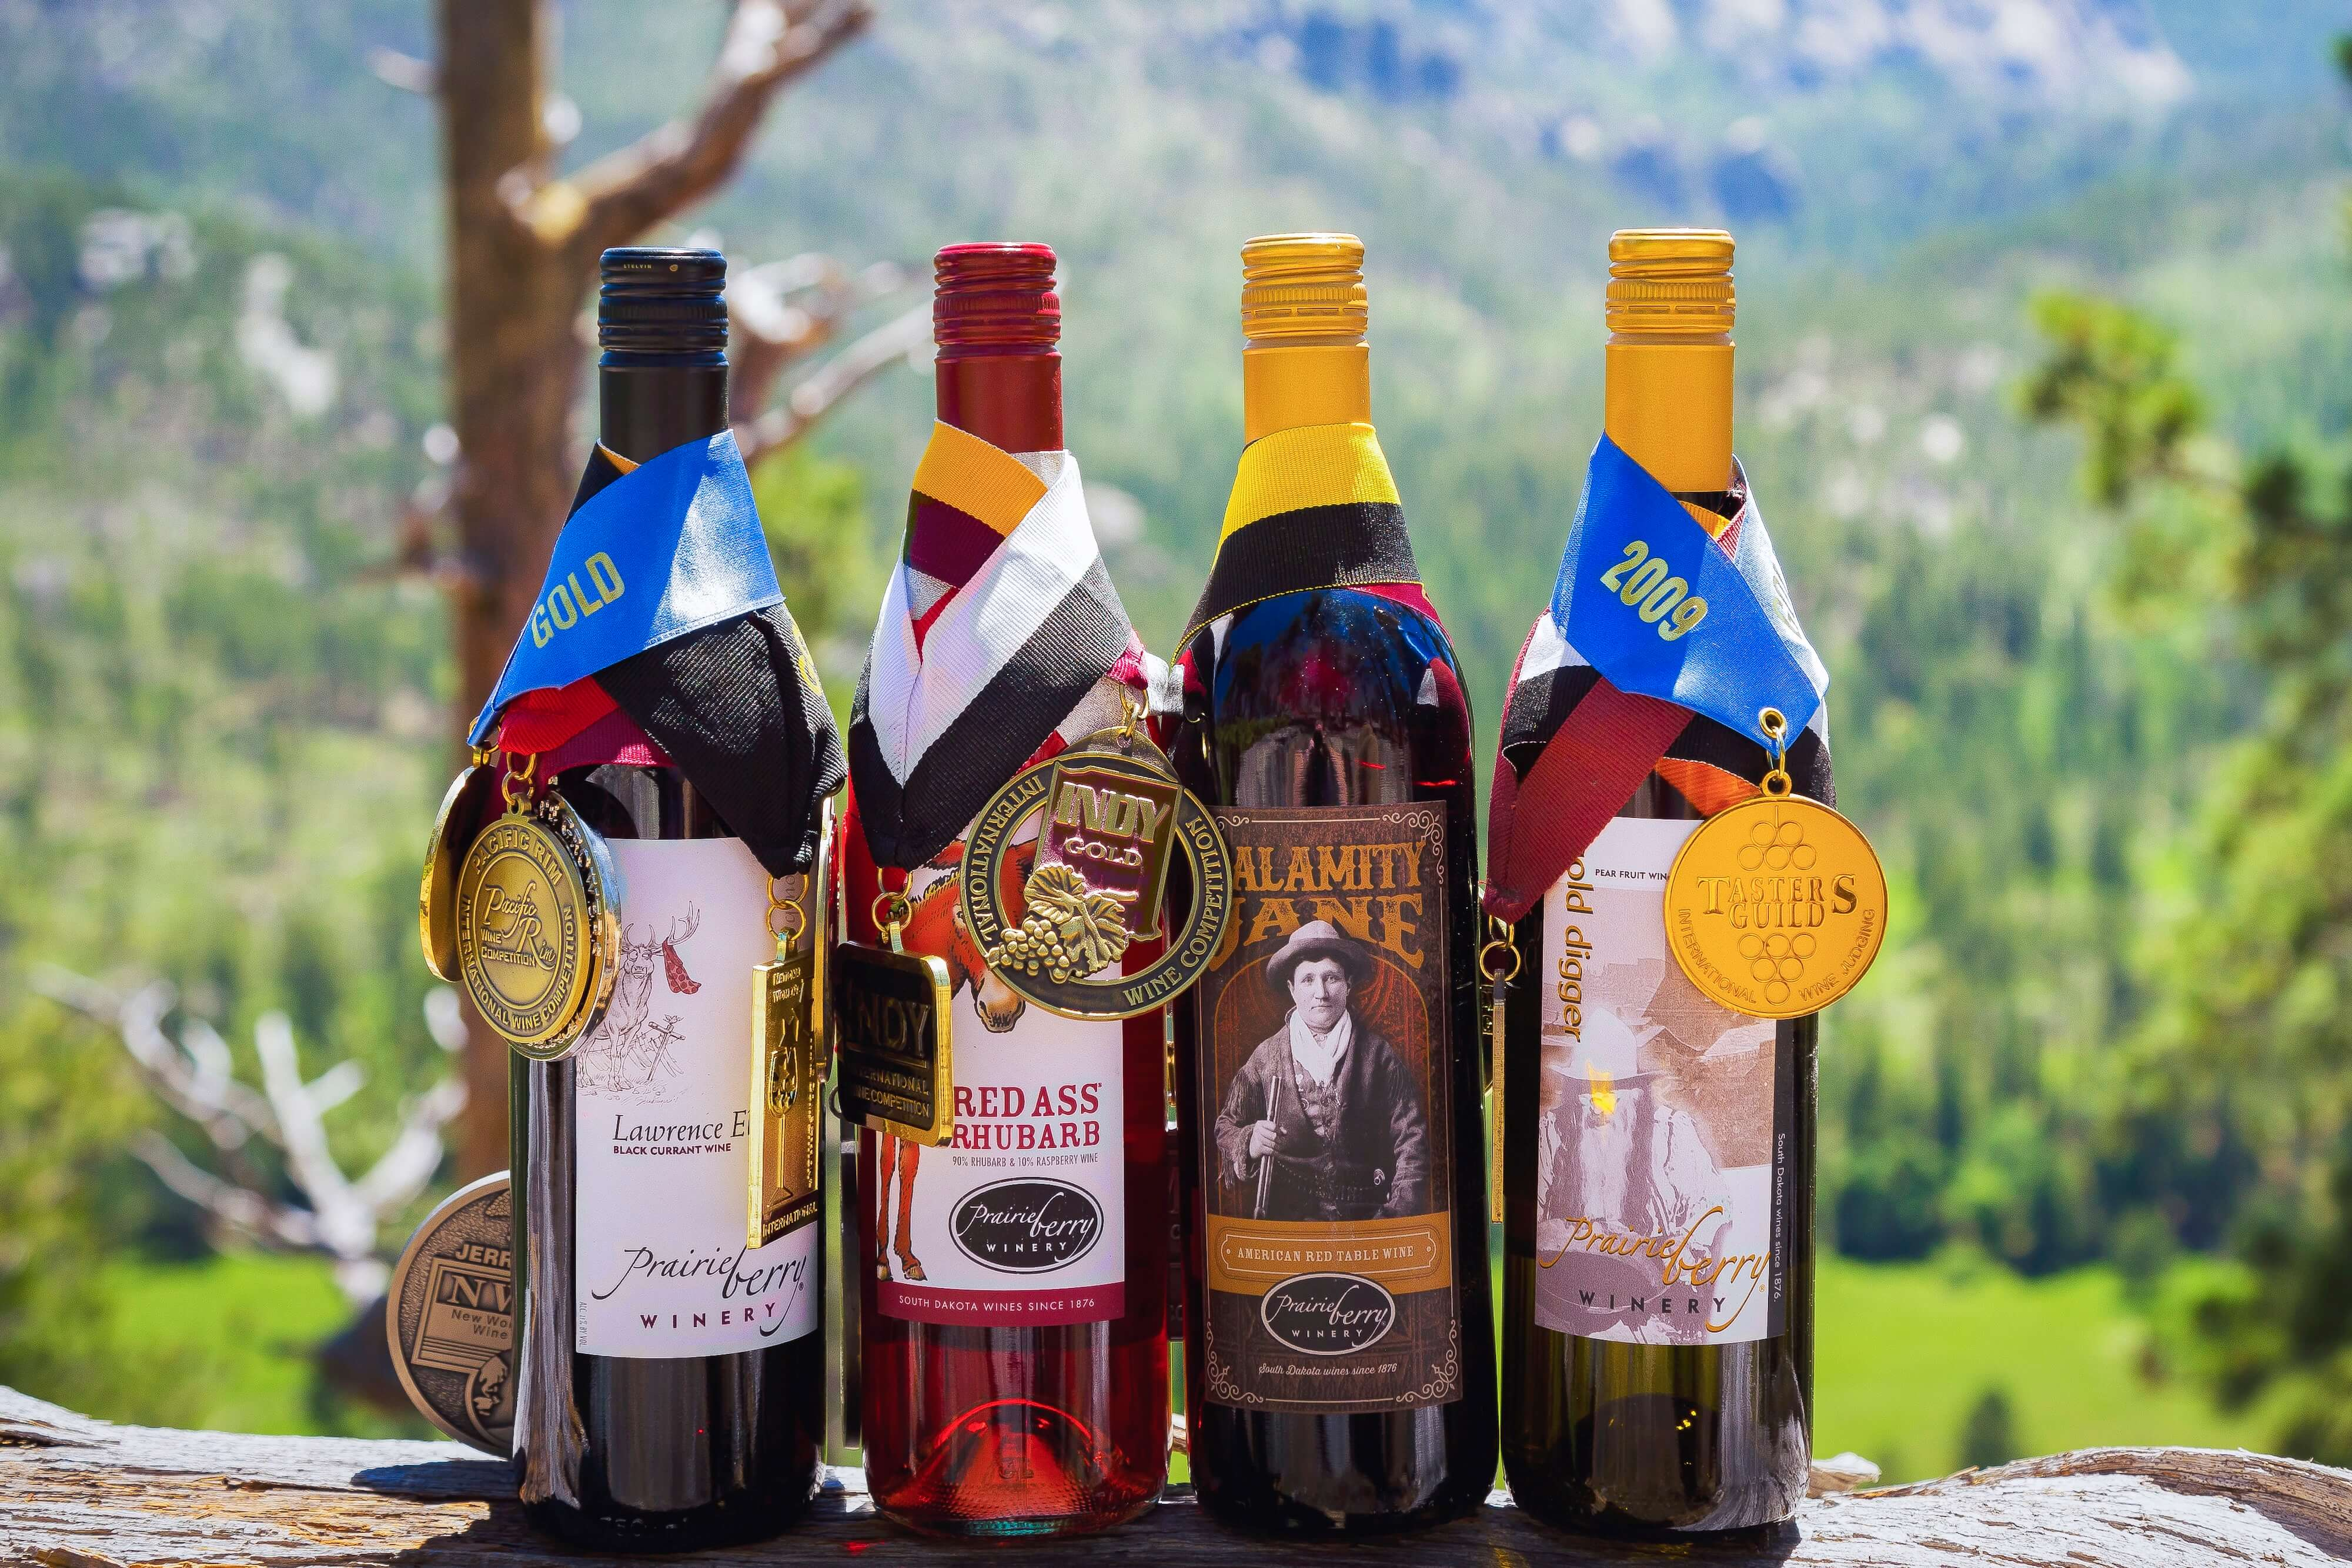 Since it began entering competitions in 2001, Prairie Berry Winery has earned more than 1,000 international wine awards. Some top winners include Lawrence Elk, Red Ass Rhubarb, Calamity Jane, and Gold Digger.